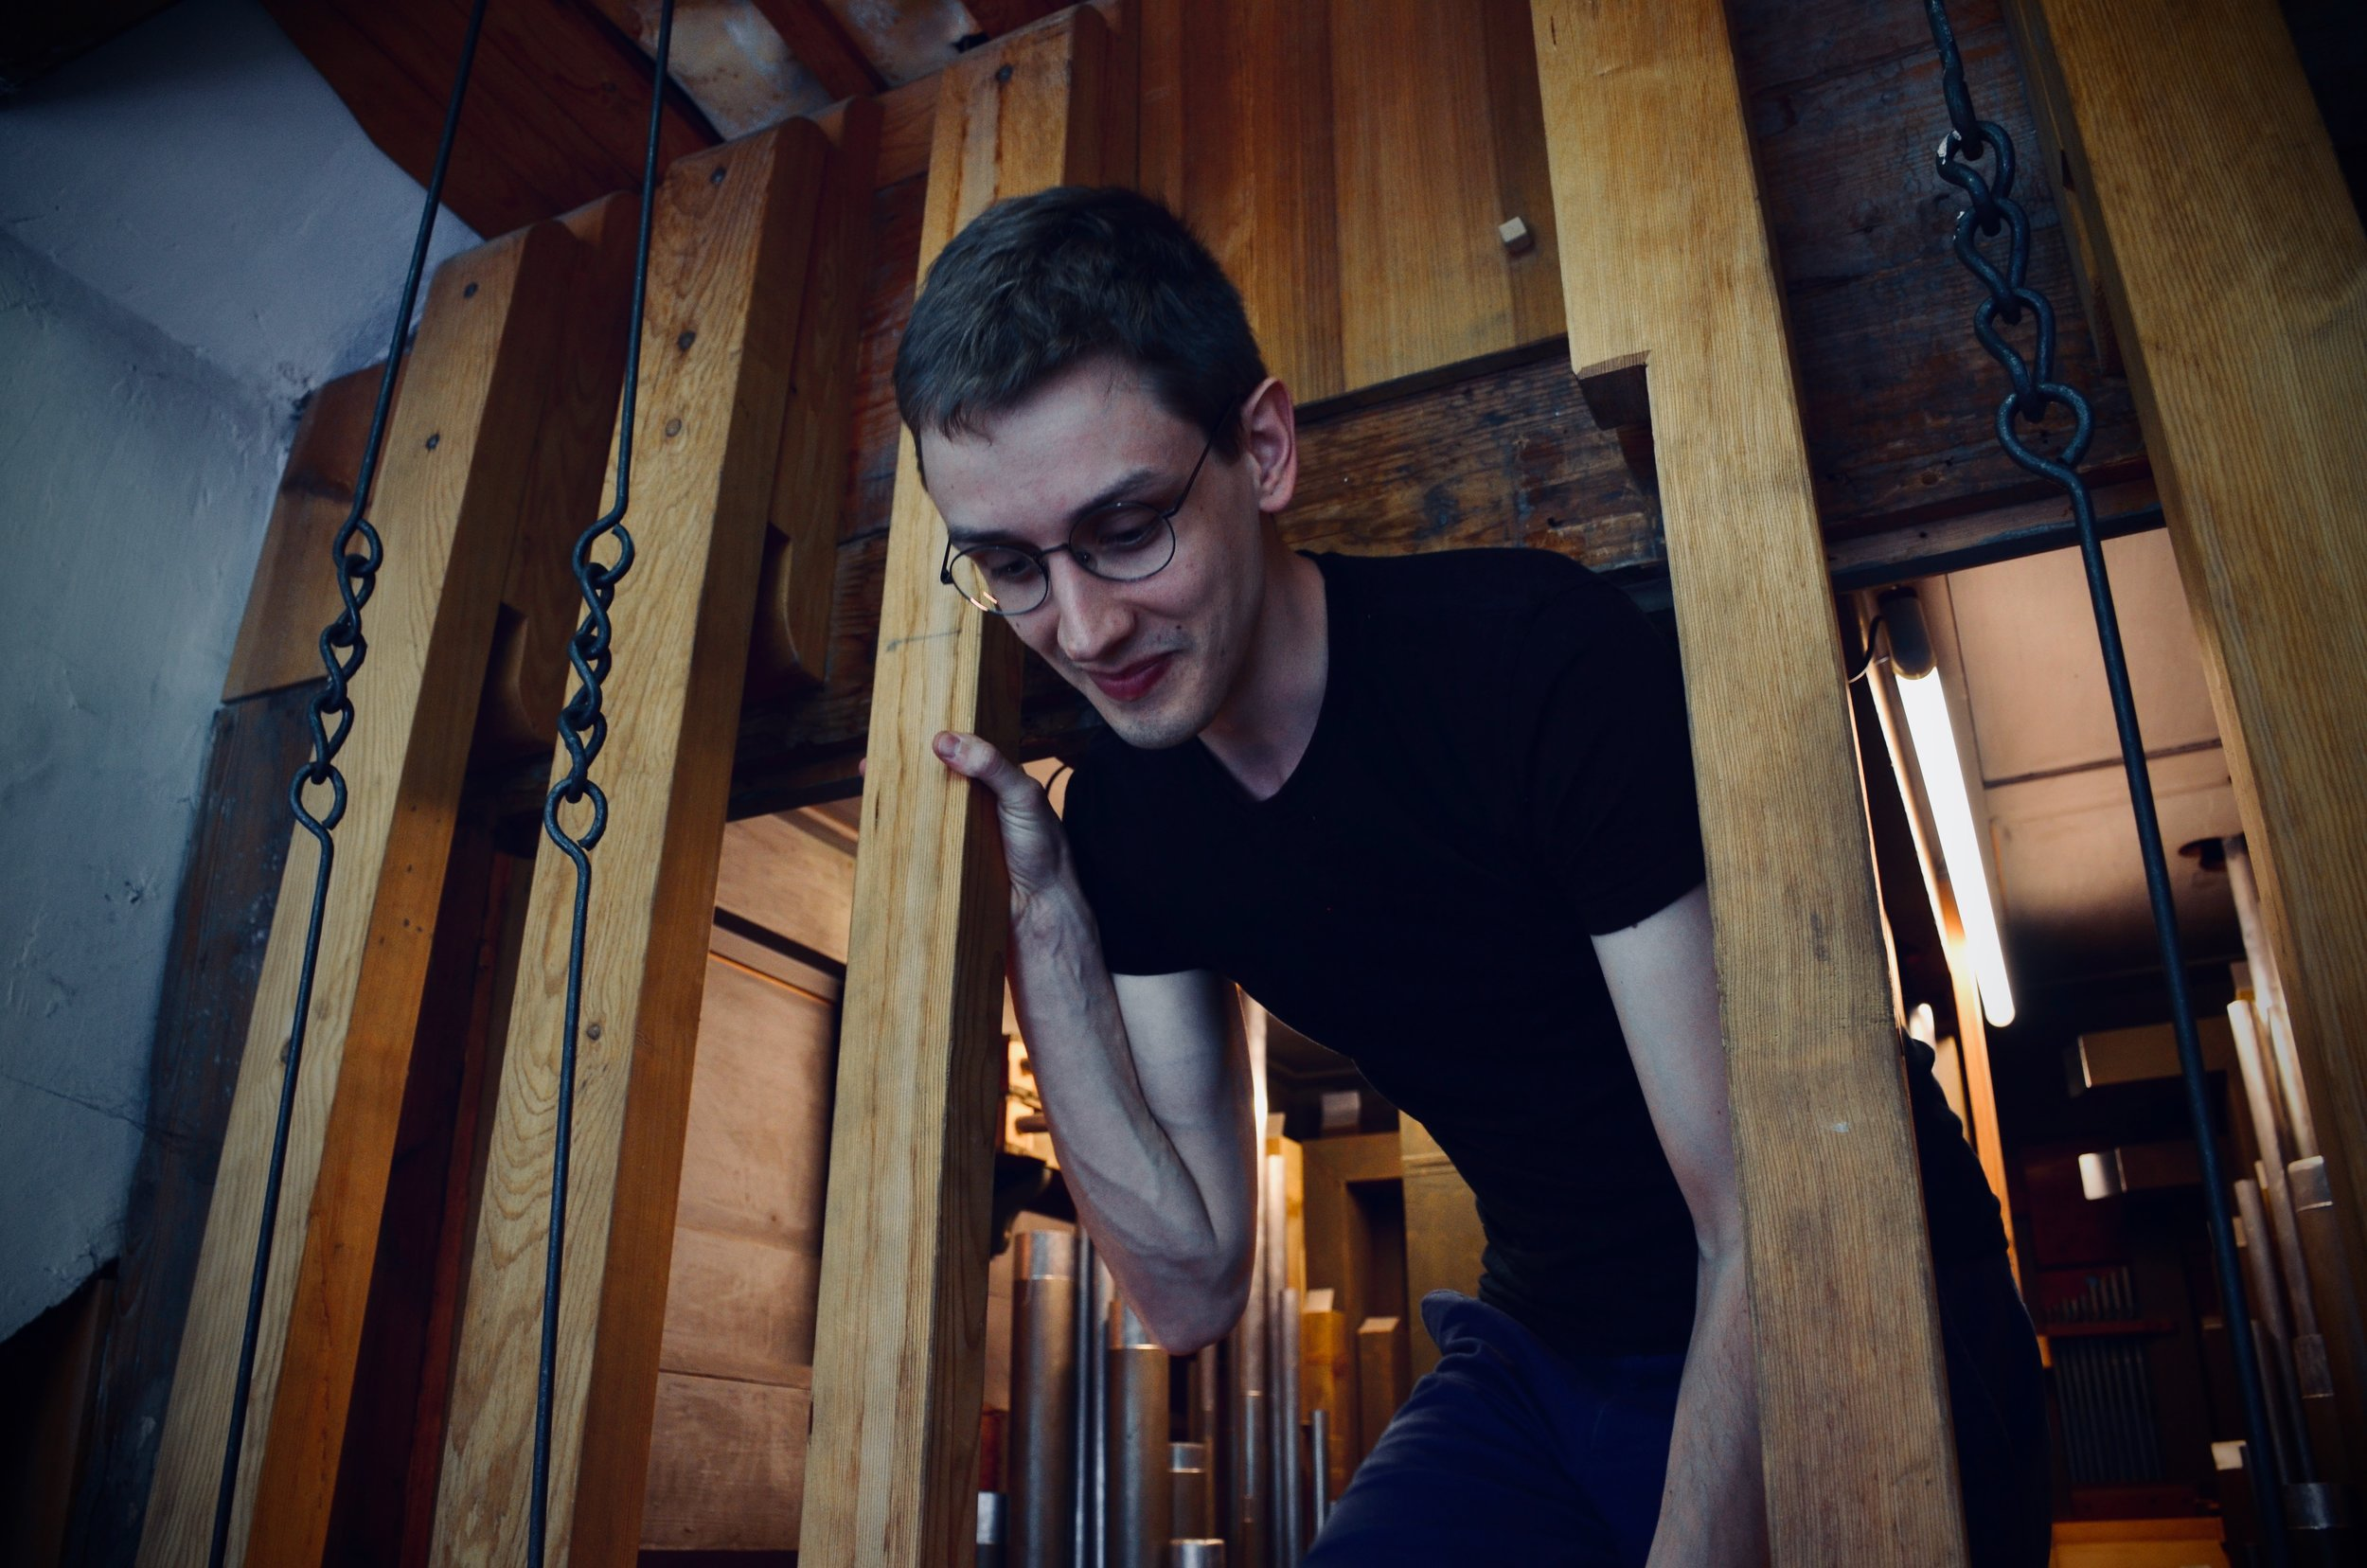 Alex Ross explores the insides of the 1730 Trost Organ, Stadtkirche, Waltershausen.